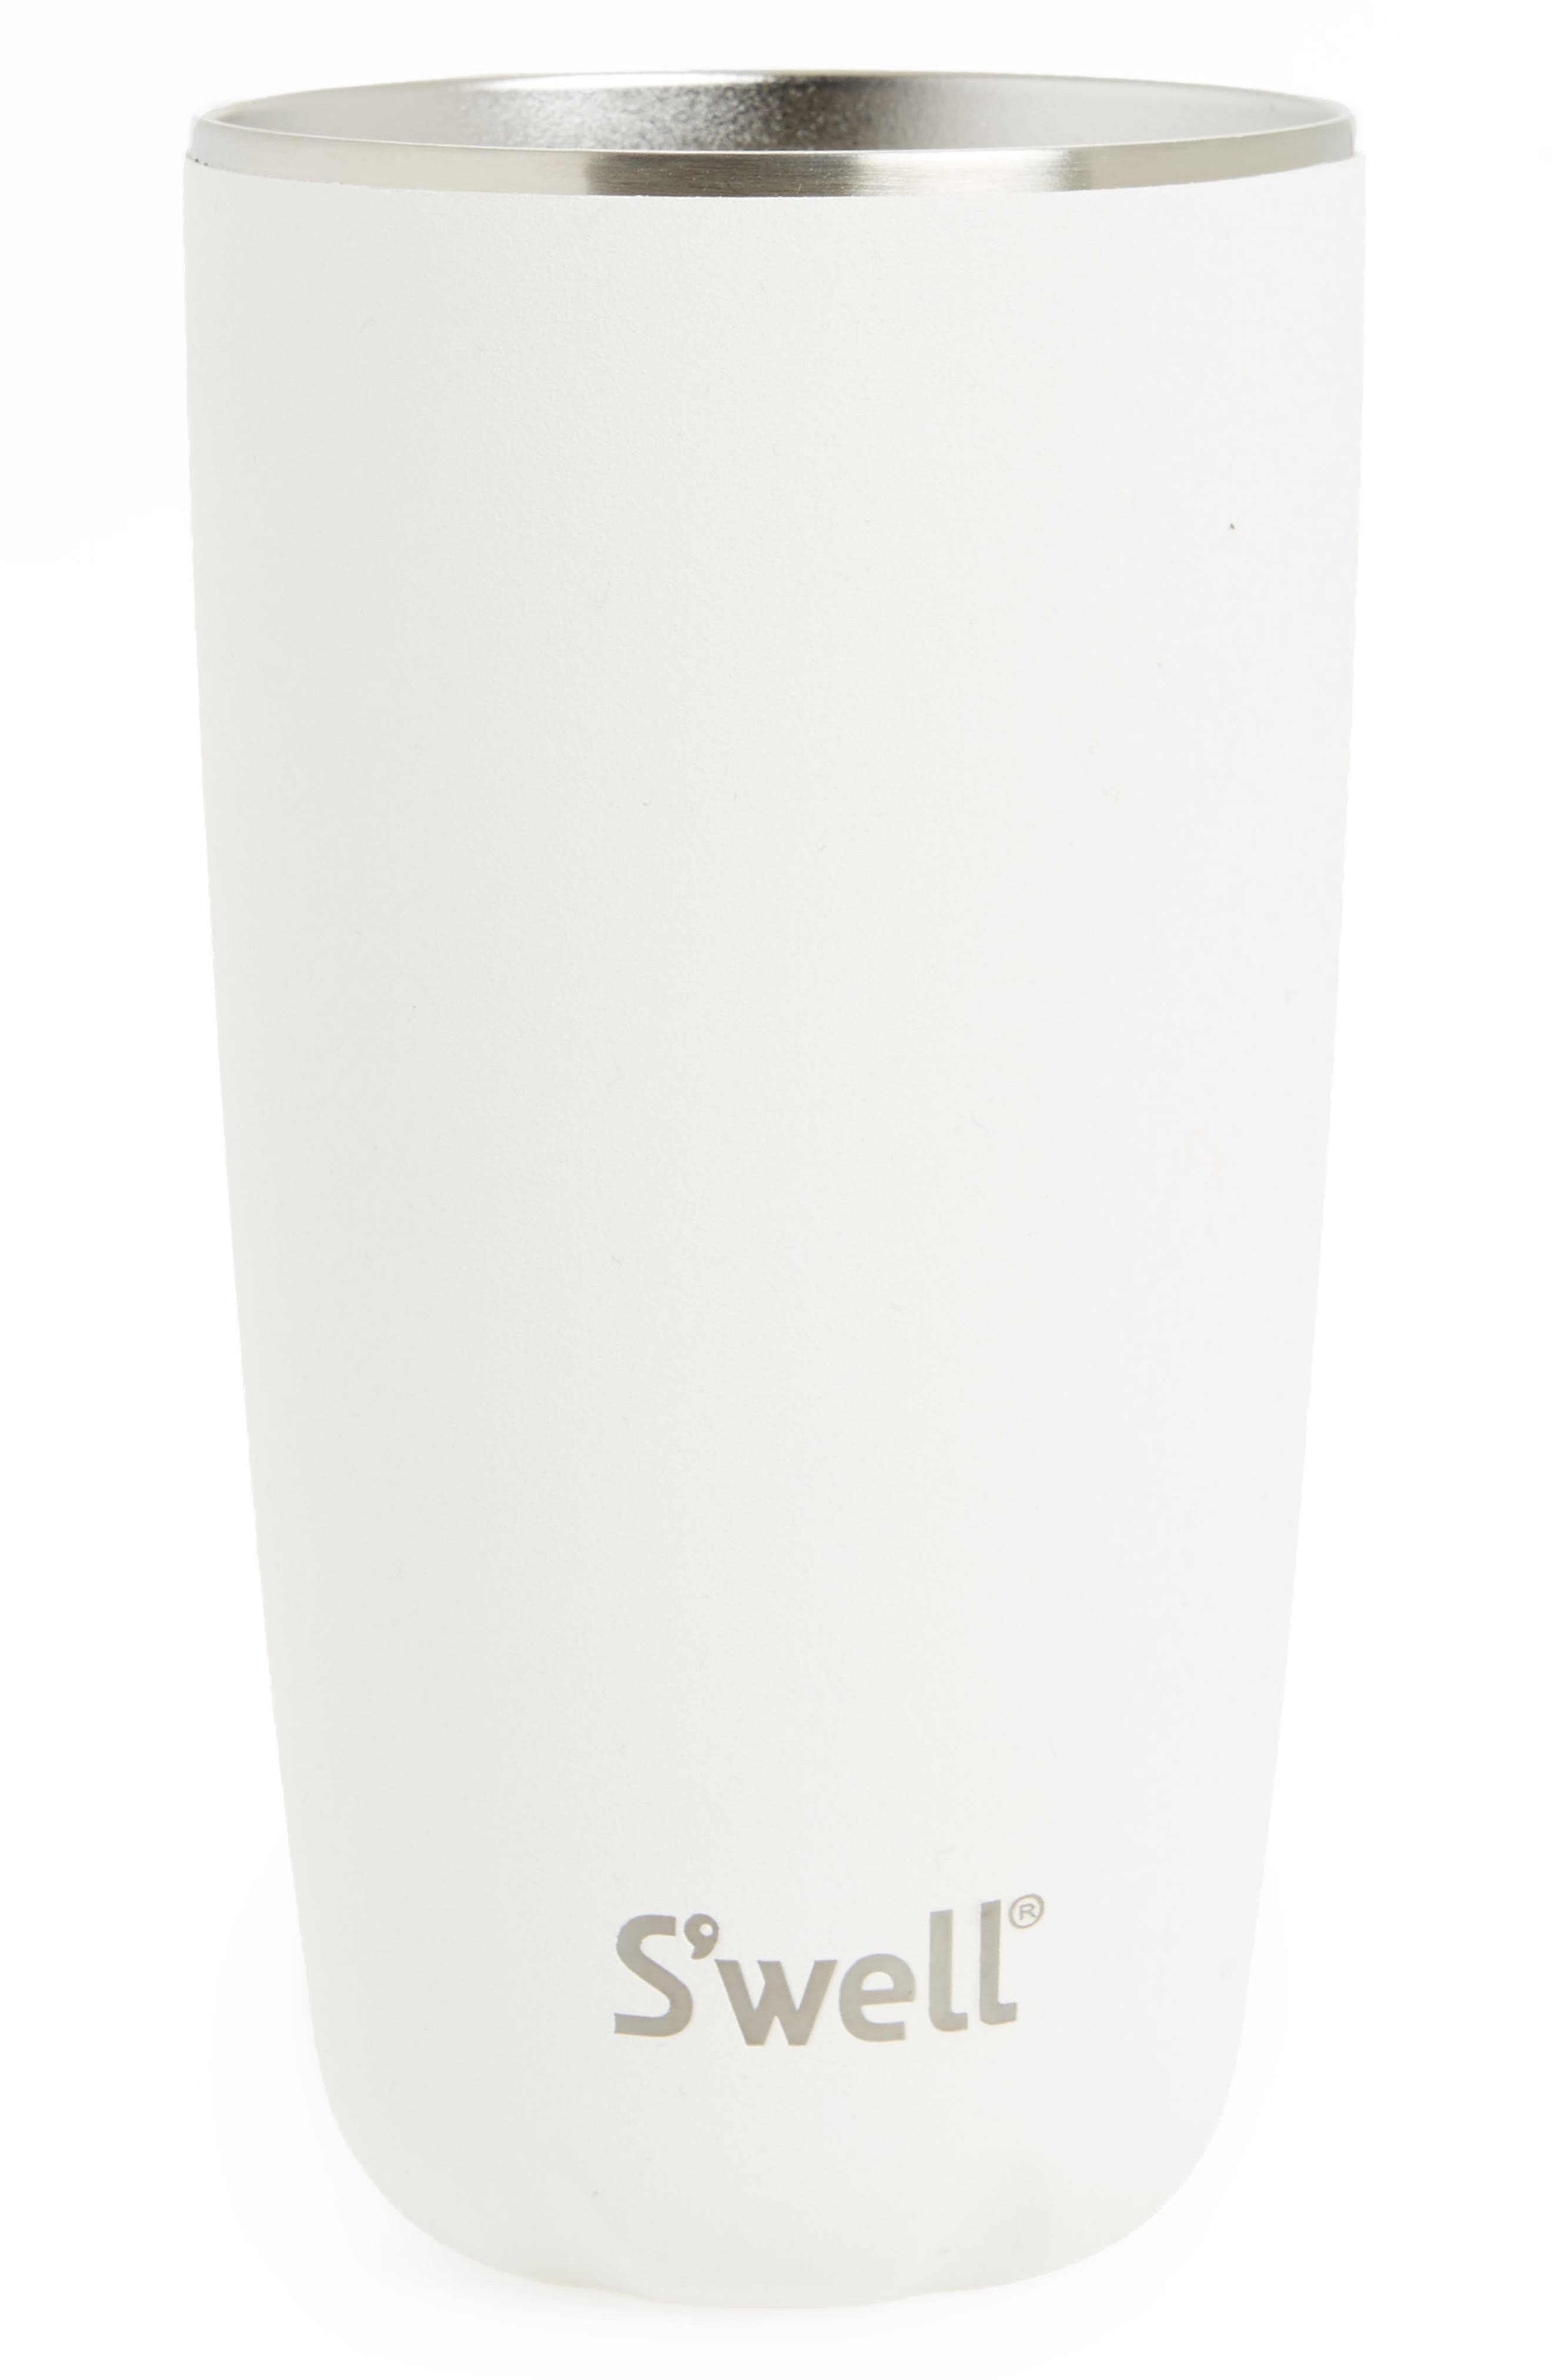 S'well Moonstone 18-Ounce Stainless Steel Insulated Tumbler